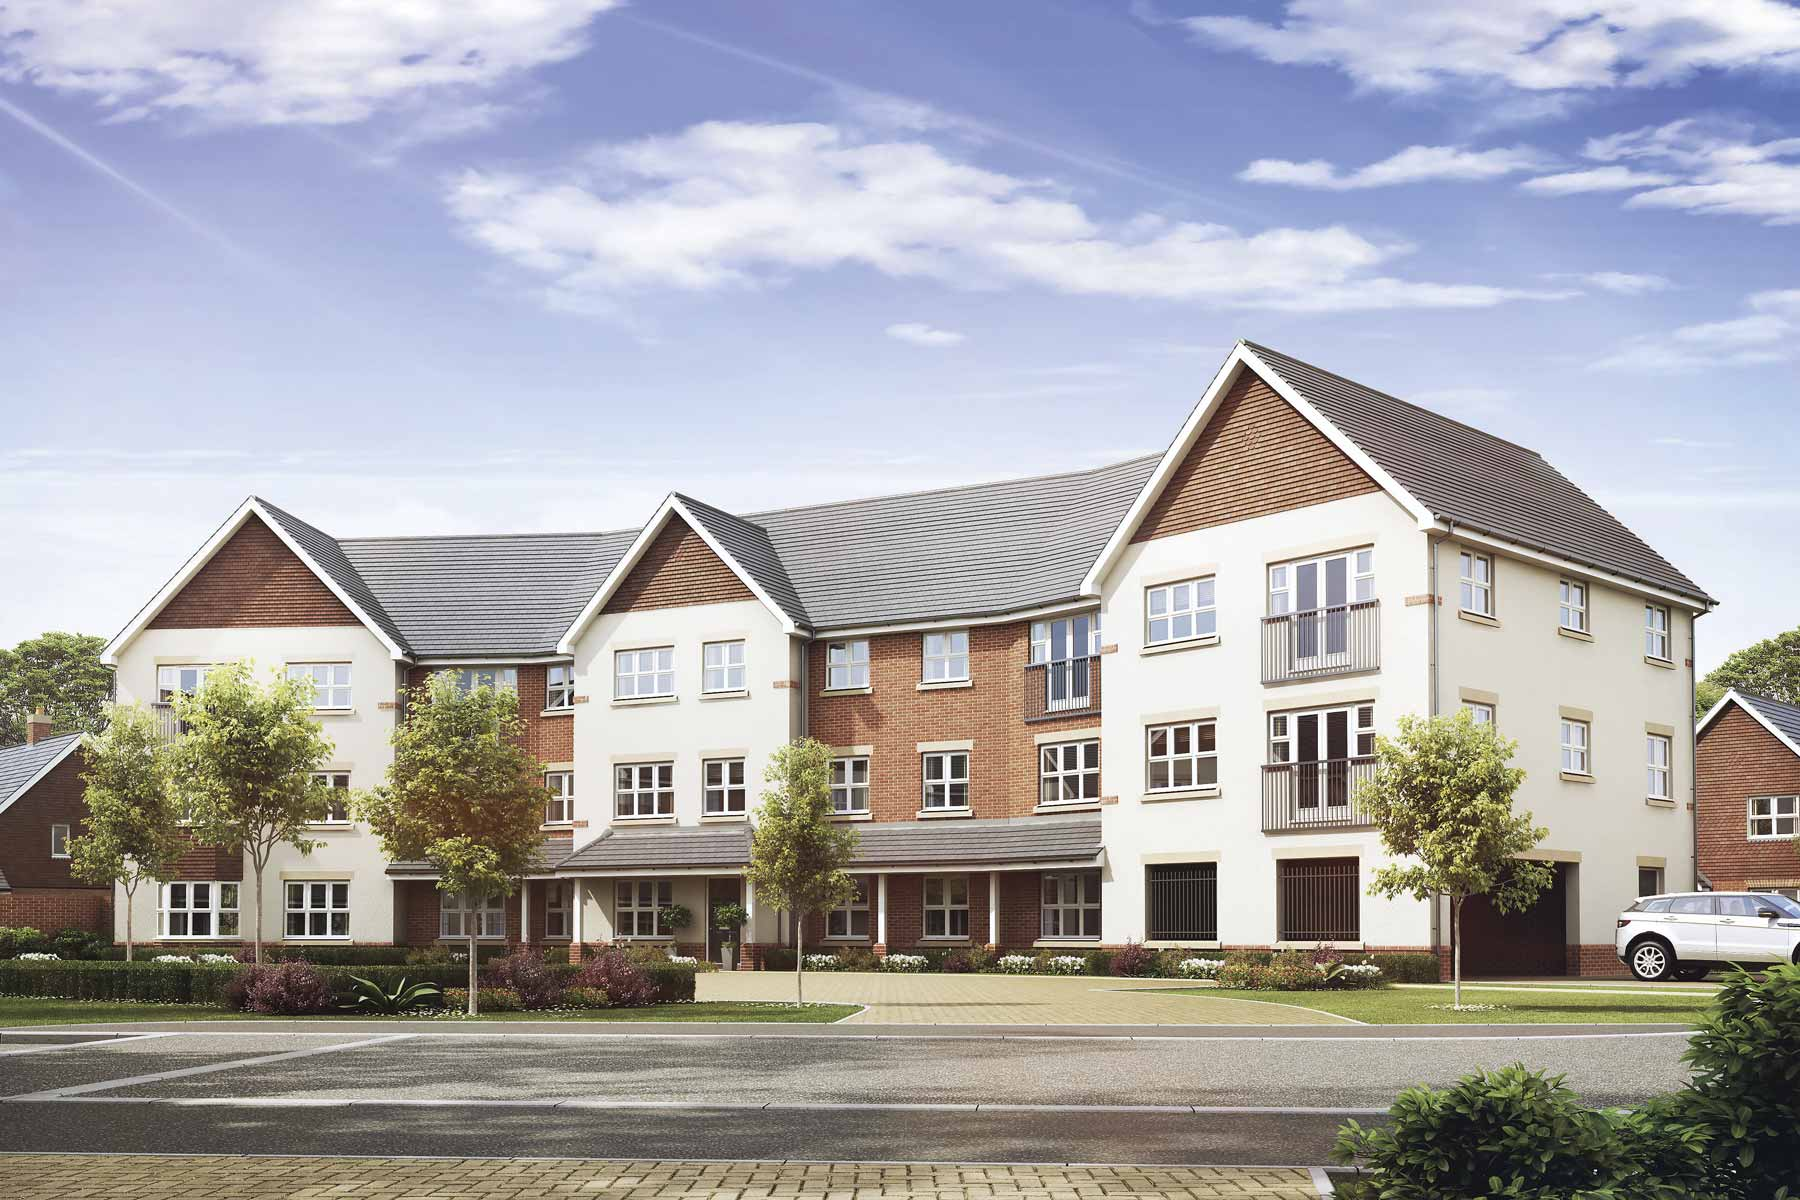 2 bedroom low cost apartments in Andover | Taylor Wimpey